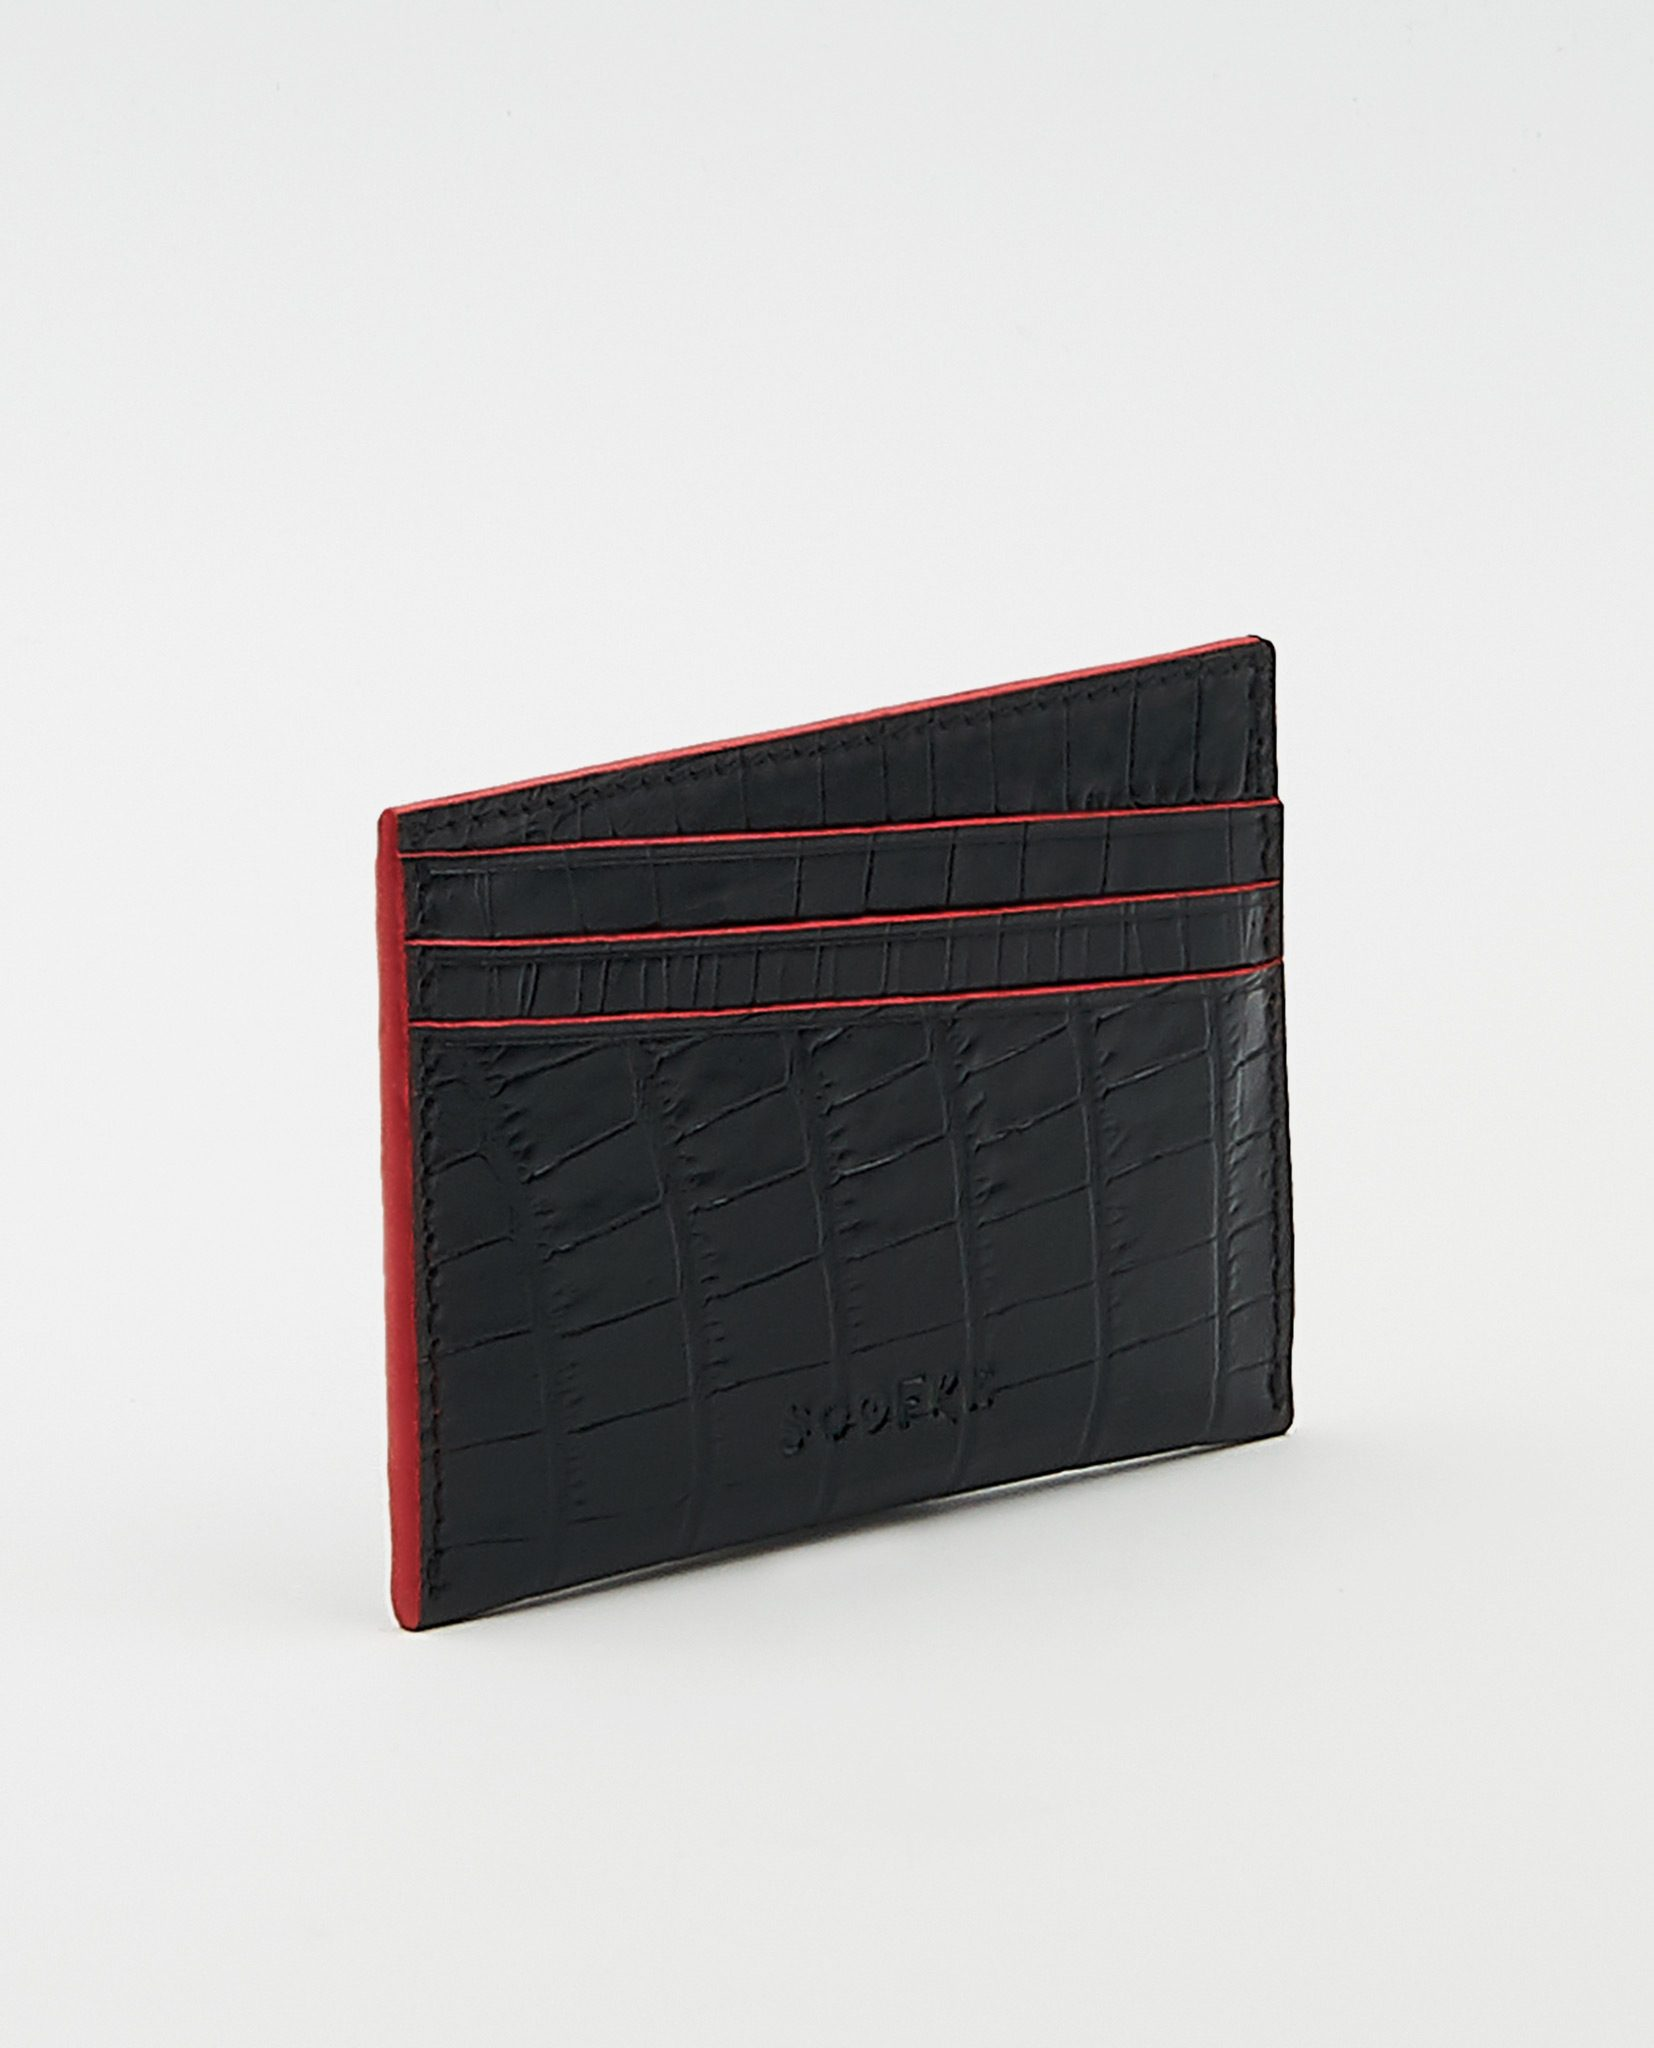 Soofre Card Holder Crocodile Embossed Leather Black-Red